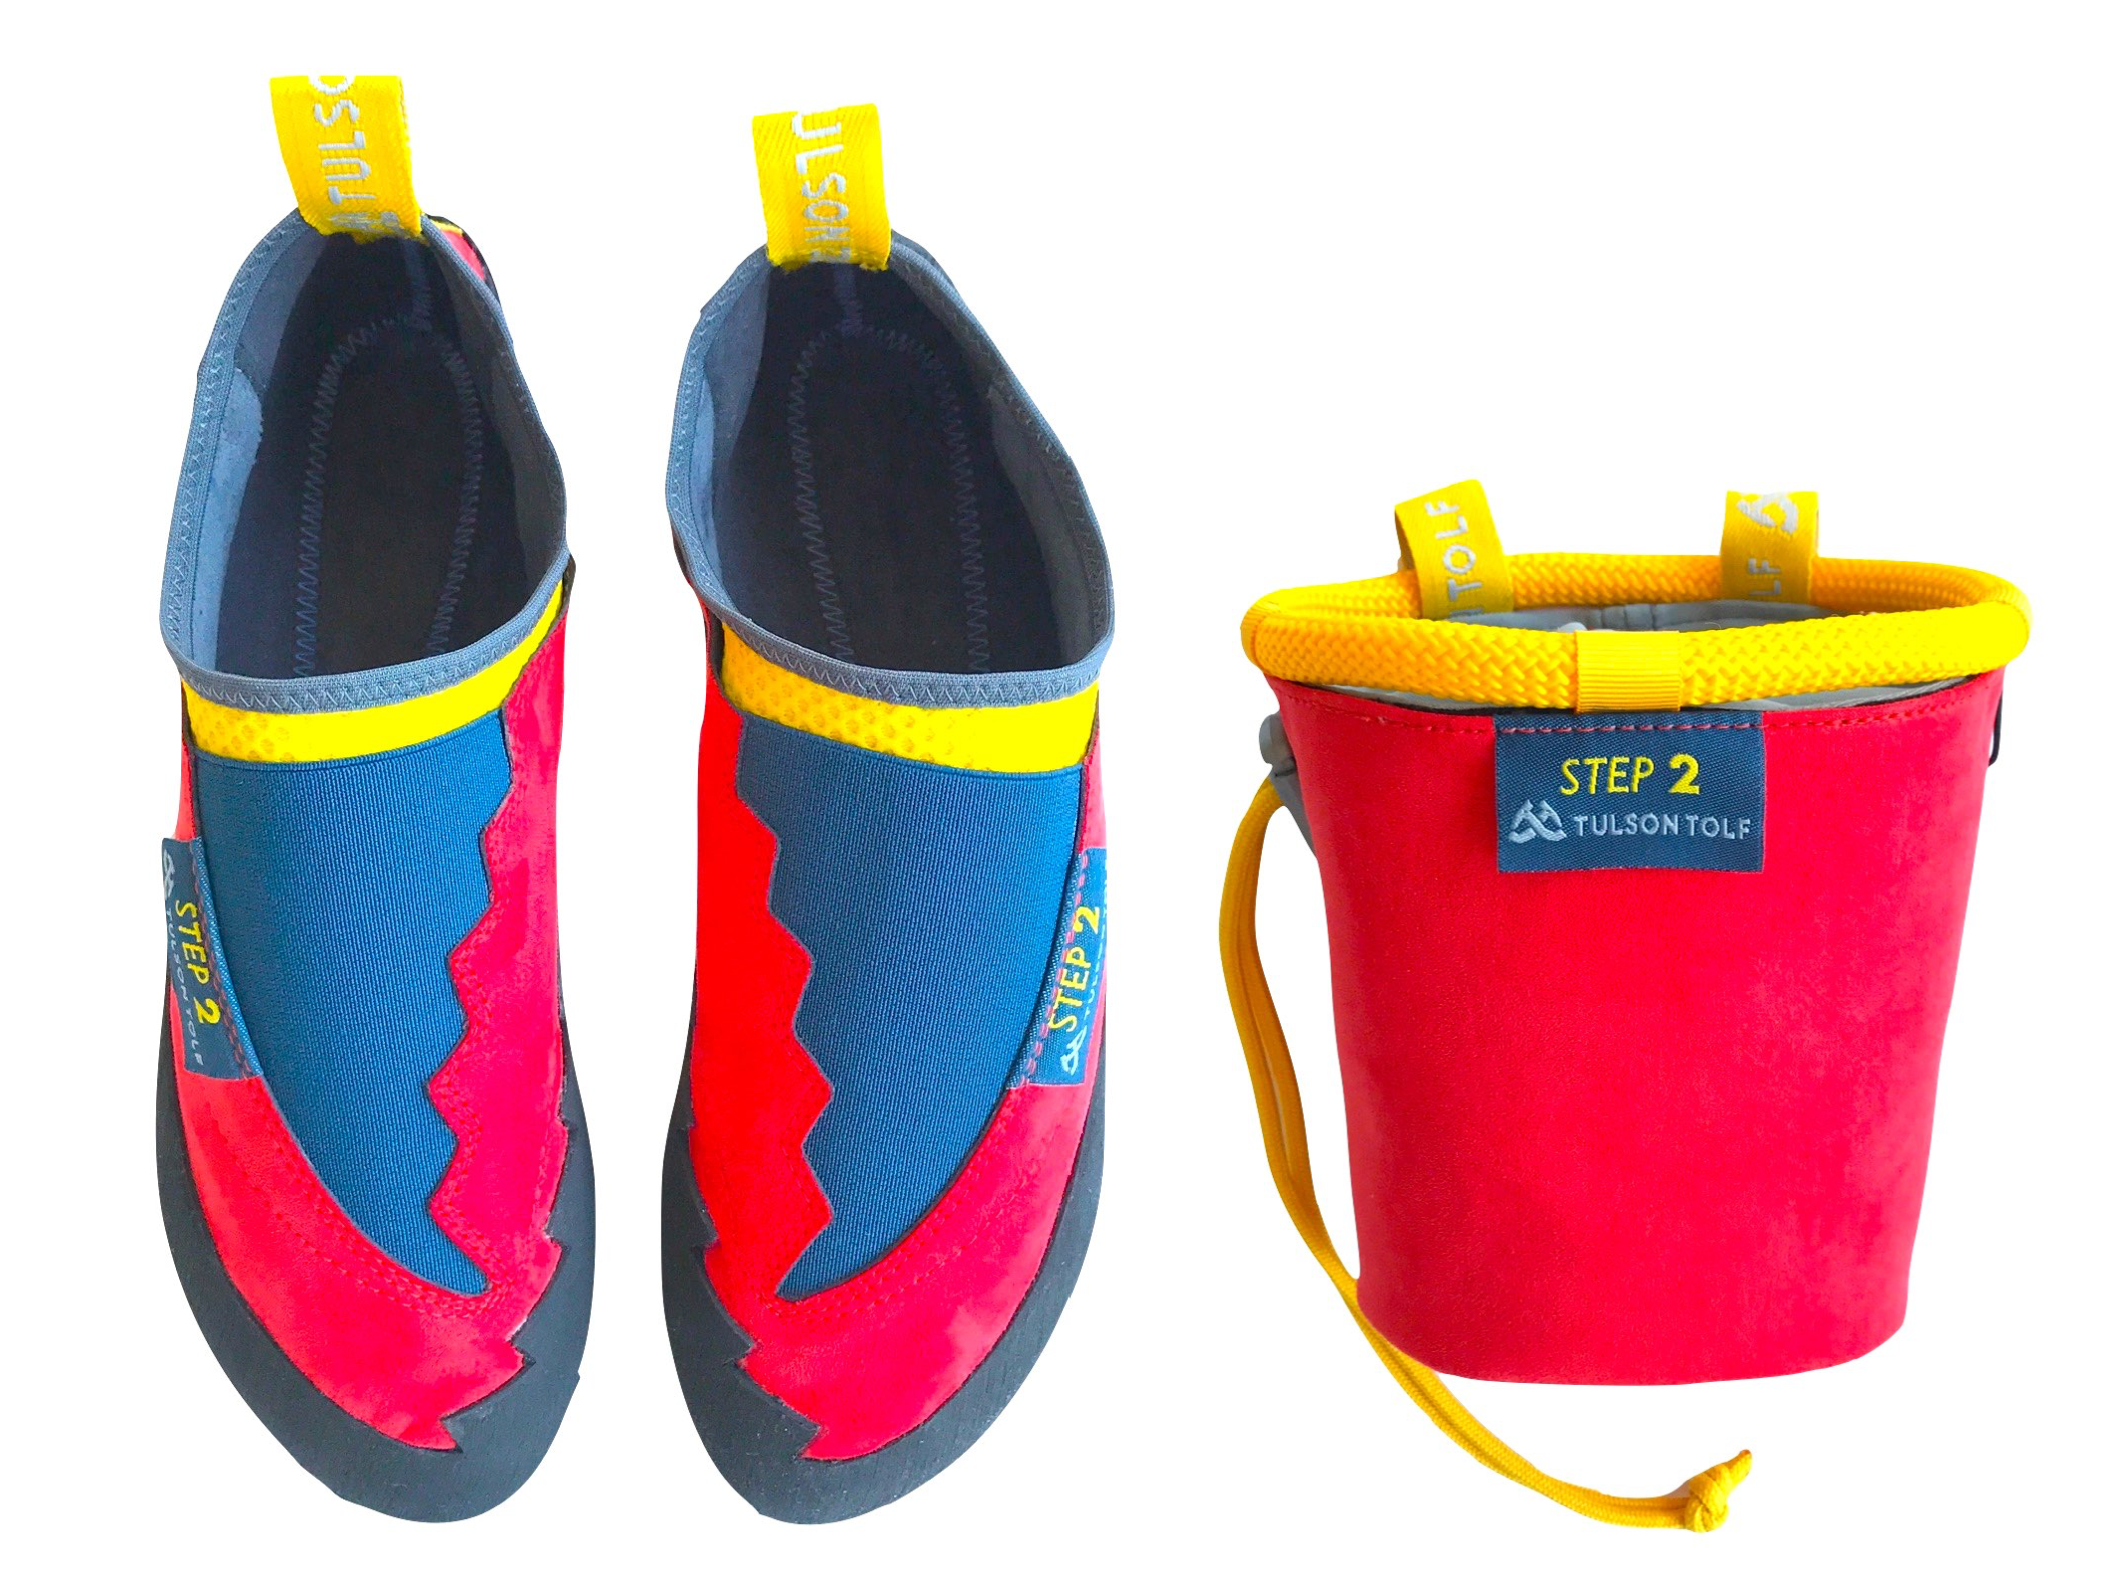 STEP 2 CLIMBING SHOES PIES DE GATO CHALK BAG MAGNESERA